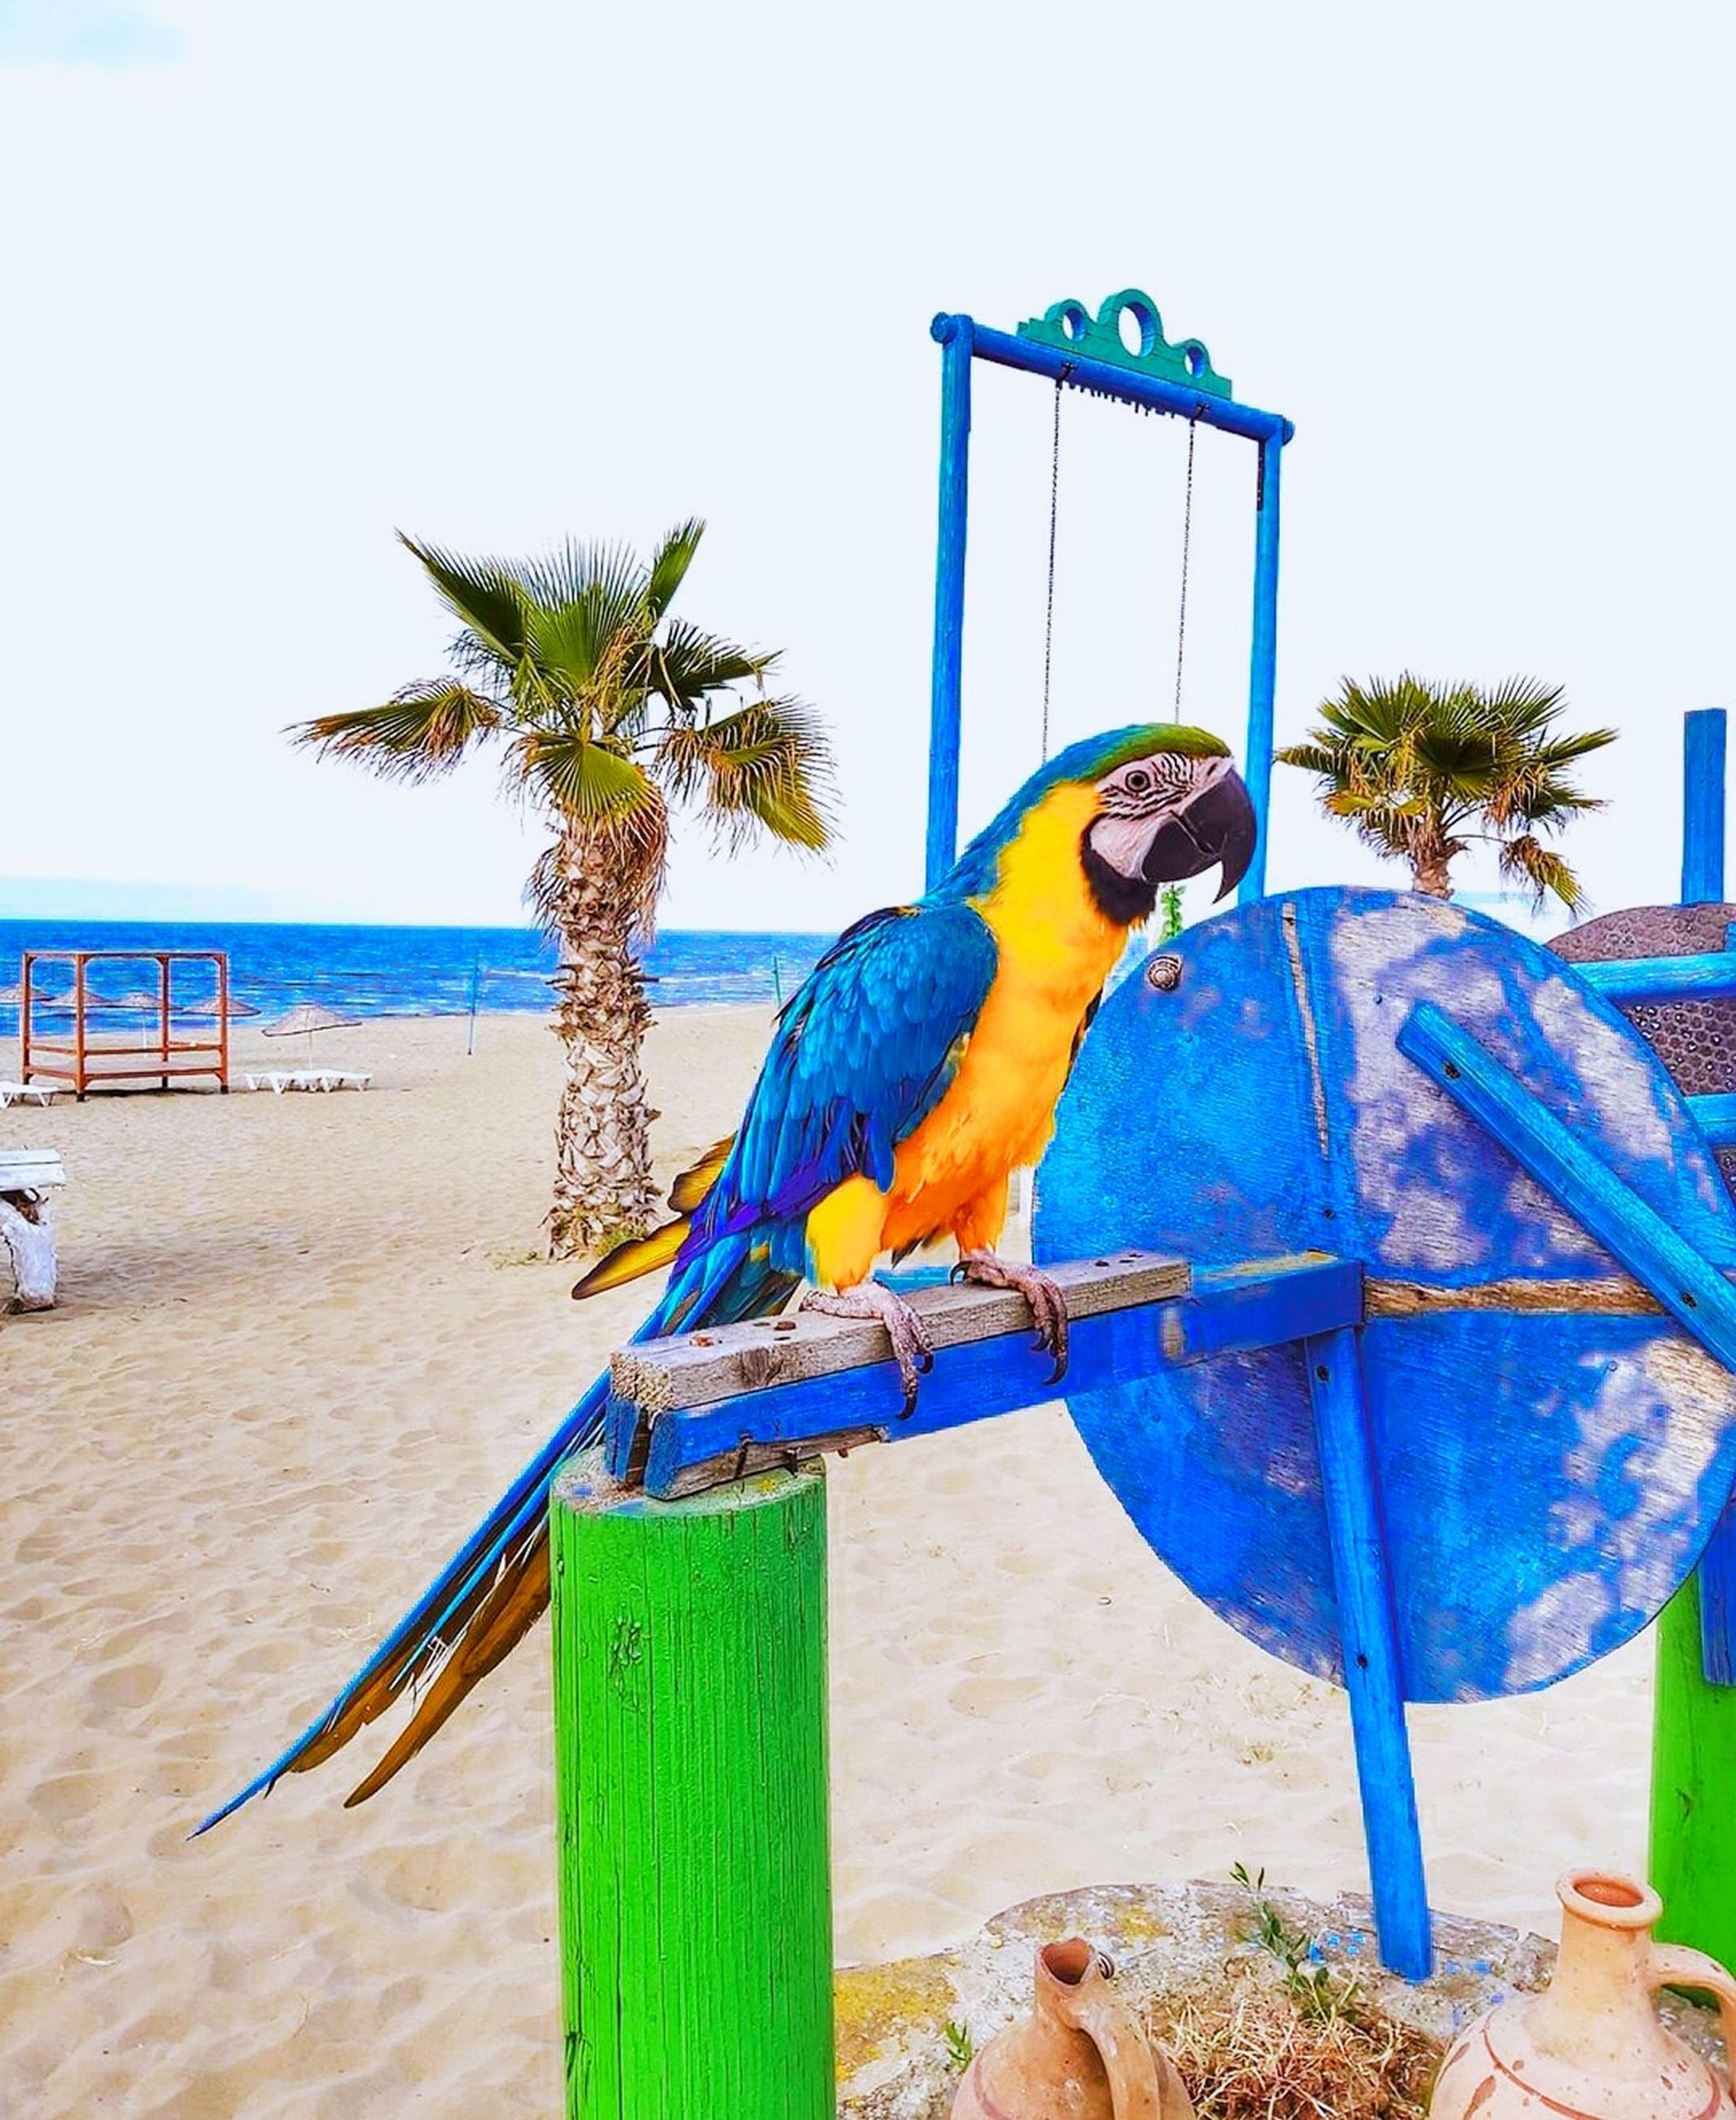 beach, palm tree, tropical climate, nature, animal, blue, land, bird, parrot, animal themes, sea, day, pet, water, sand, tree, animal wildlife, sky, no people, outdoors, plant, multi colored, beauty in nature, perching, wildlife